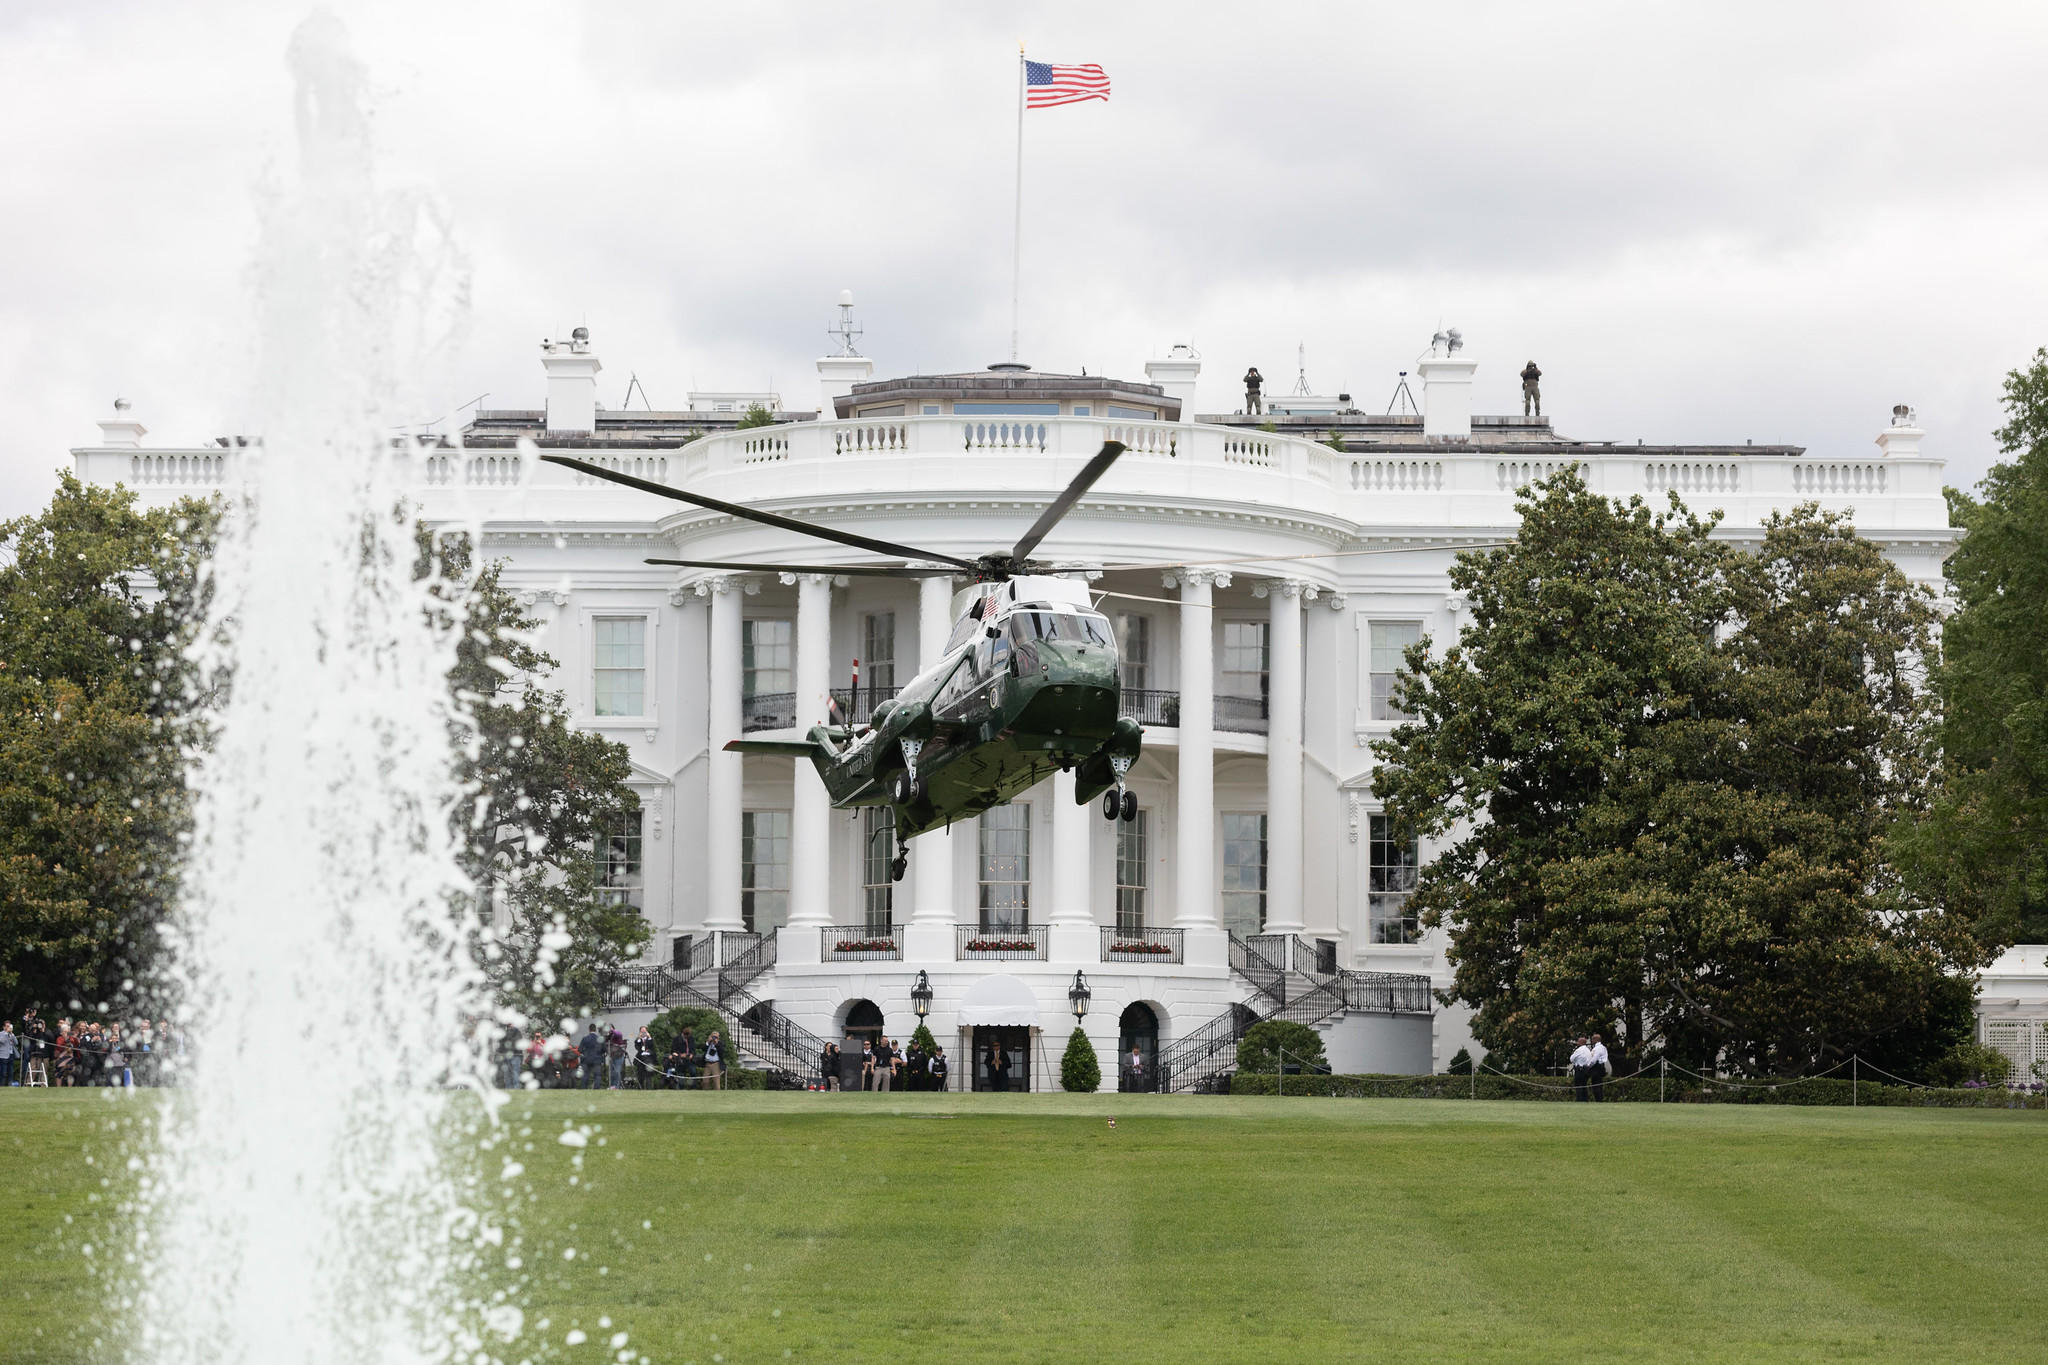 whitehouse-marineone-2official-white-house-photo-by-joyce-n-boghosian